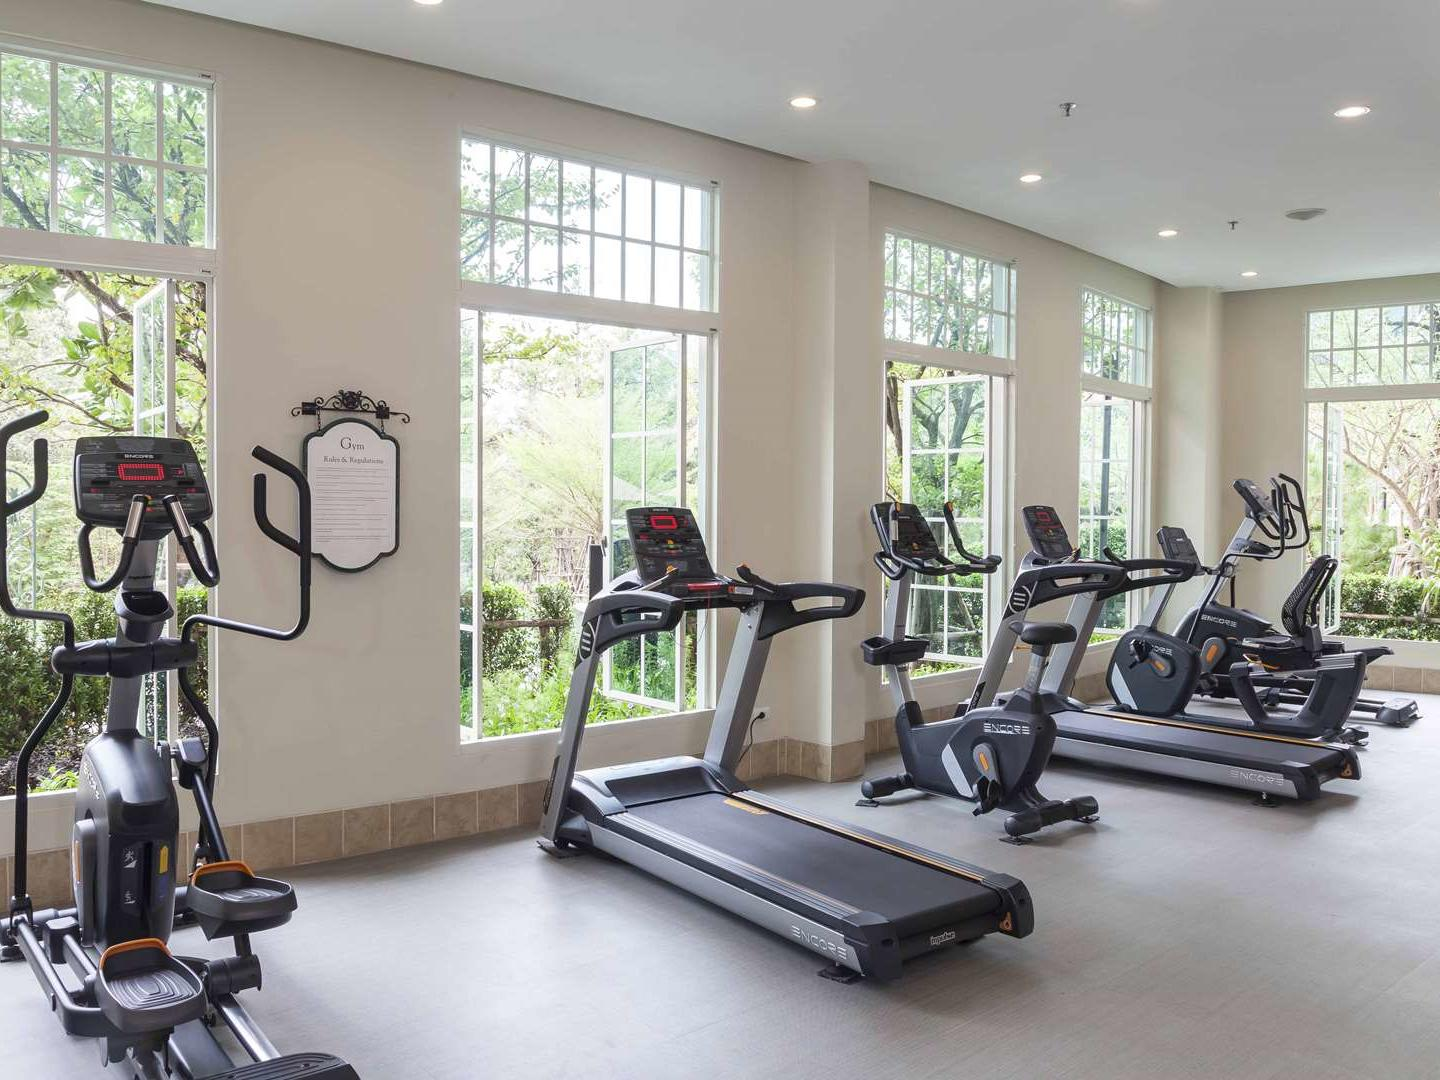 Gym with garden view at U Hotels and Resorts